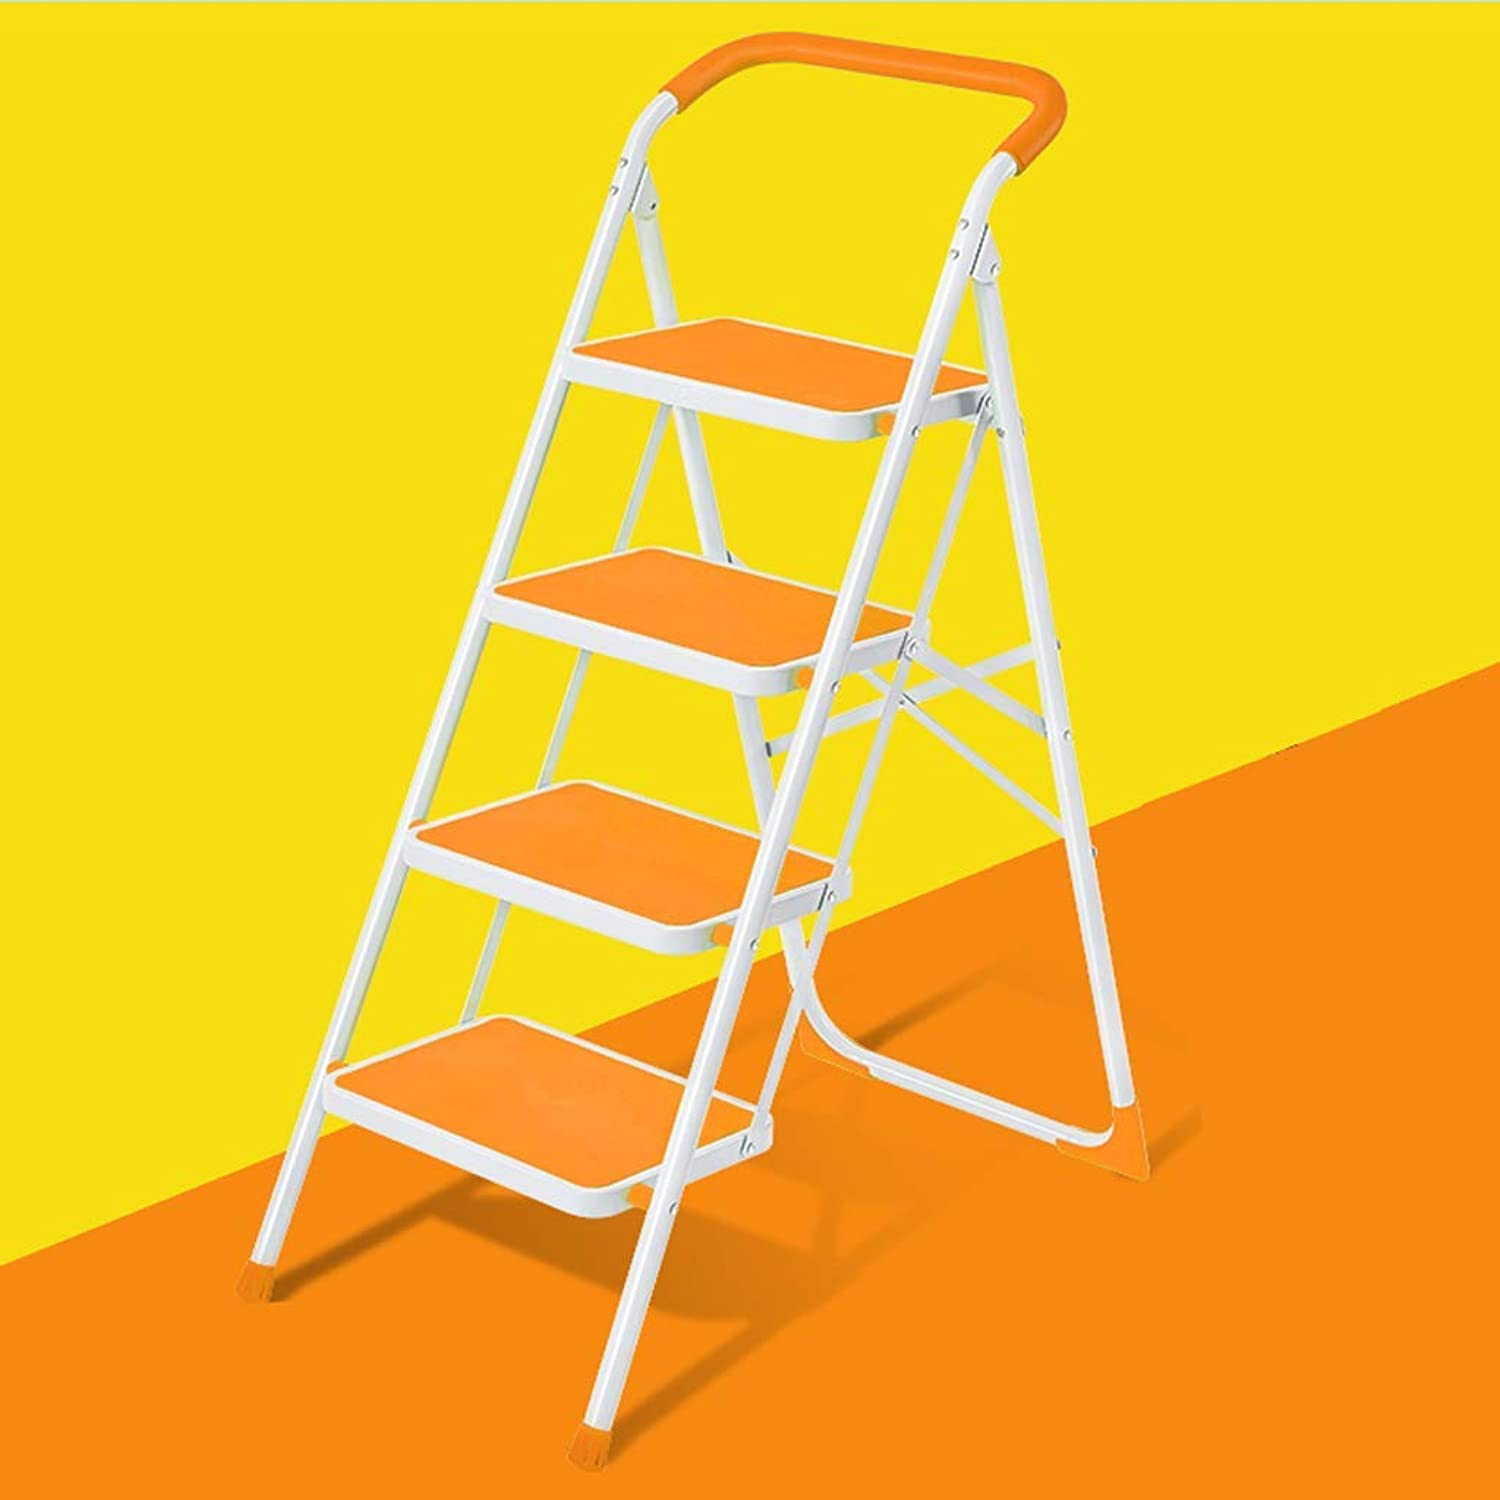 KTYXDE Staircase Staircase Four-Story Folding Stool Stair Chair Suitable for Kitchen Bedroom Indoor Multi-Function Household Shrinking Ladder 49x84x126CM Step Stool (color   orange)